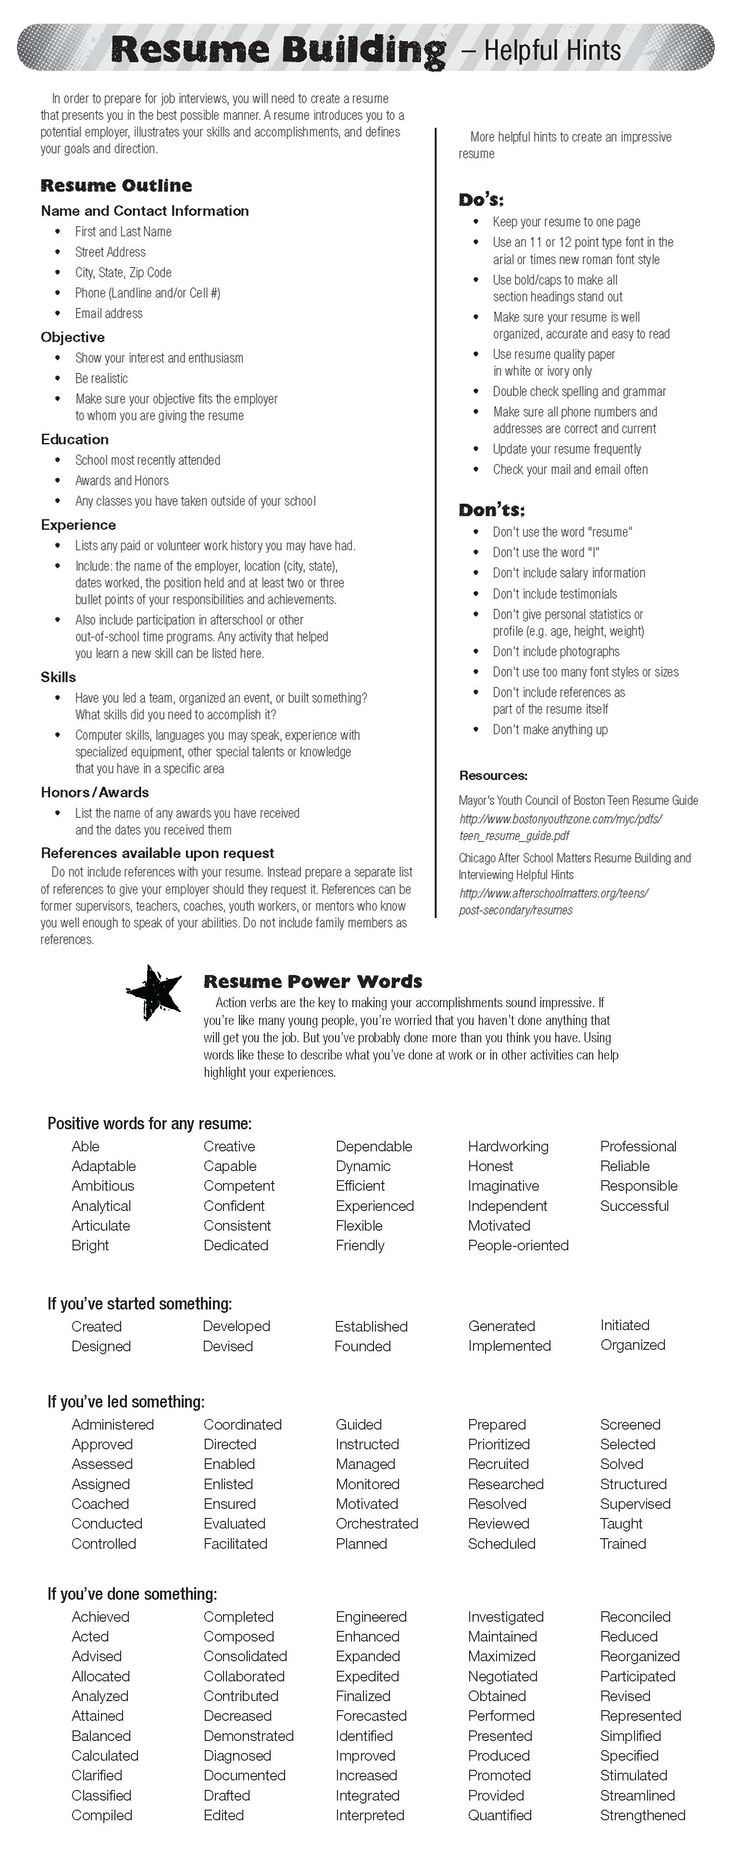 Picnictoimpeachus  Surprising  Ideas About Resume On Pinterest  Cv Format Resume  With Gorgeous Check Out Todays Resume Building Tips Resume Resumepowerwords With Charming Slp Resume Also Outline Of A Resume In Addition Best Font To Use On Resume And Resume Professional Writers Reviews As Well As Free Online Resumes Additionally Two Page Resume Format From Pinterestcom With Picnictoimpeachus  Gorgeous  Ideas About Resume On Pinterest  Cv Format Resume  With Charming Check Out Todays Resume Building Tips Resume Resumepowerwords And Surprising Slp Resume Also Outline Of A Resume In Addition Best Font To Use On Resume From Pinterestcom